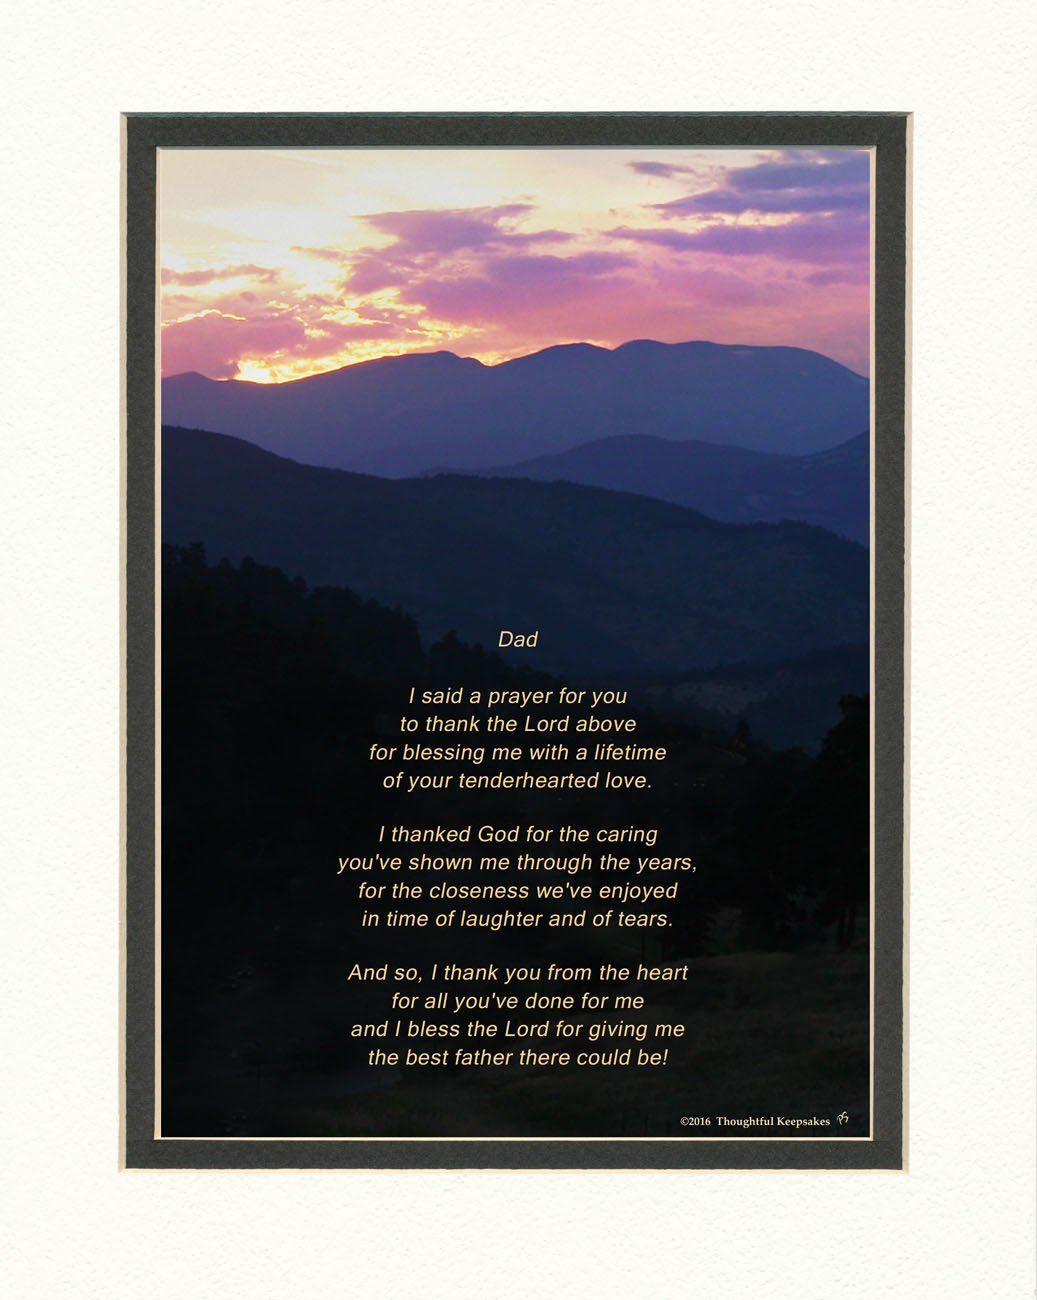 Dad Gift with ''Thank You Prayer for Best Dad'' Poem. Mts Sunset Photo, 8x10 Double Matted. Special Father Gift for Father's Day, Birthday, Christmas, Wedding.